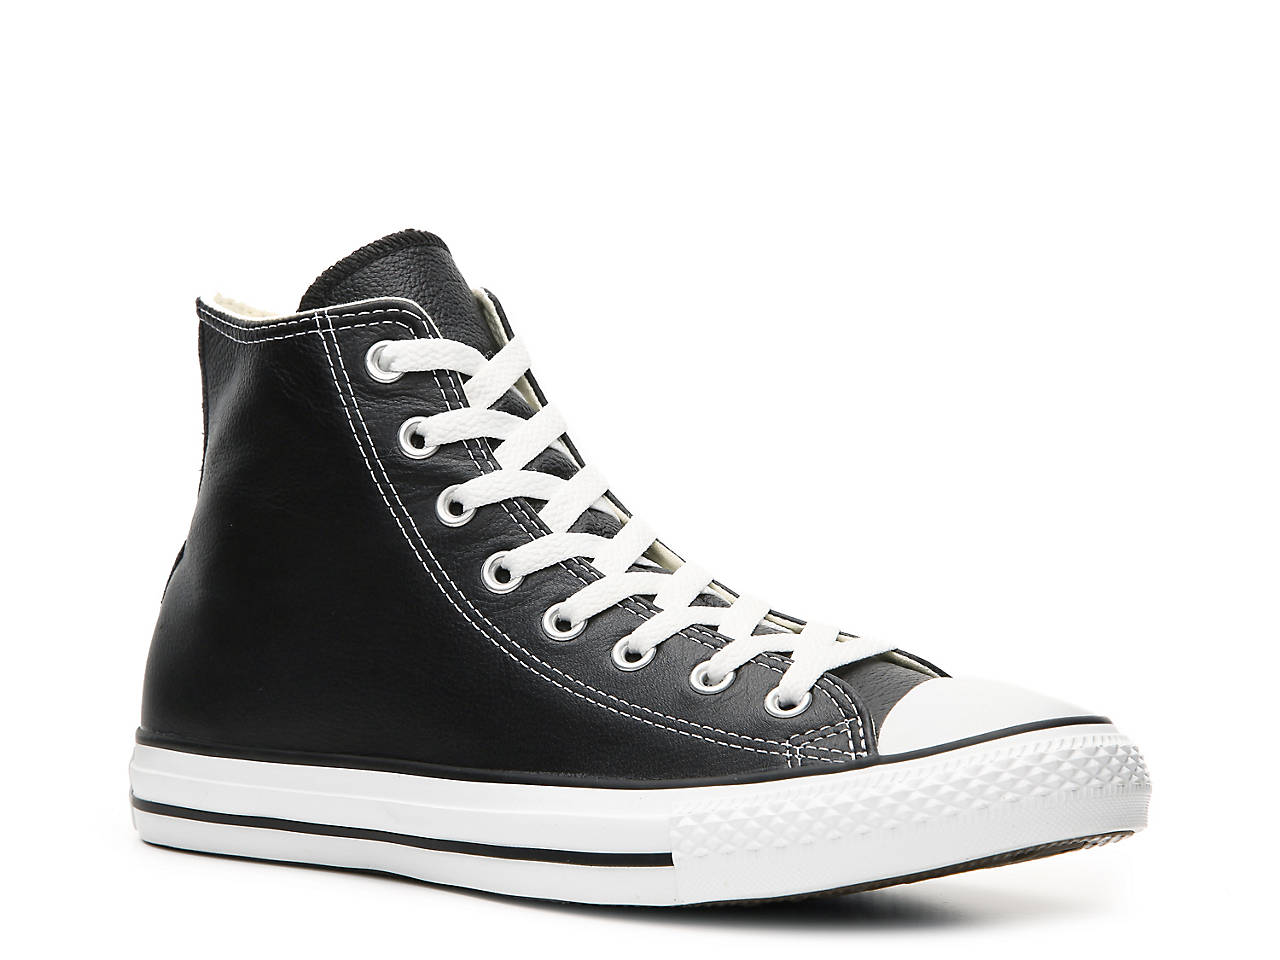 Cheap Prices Authentic Enjoy Cheap Price Converse High Top Leather Sneaker Free Shipping Latest Collections Buy Cheap Best Prices Popular Cheap Price 8Qqu1